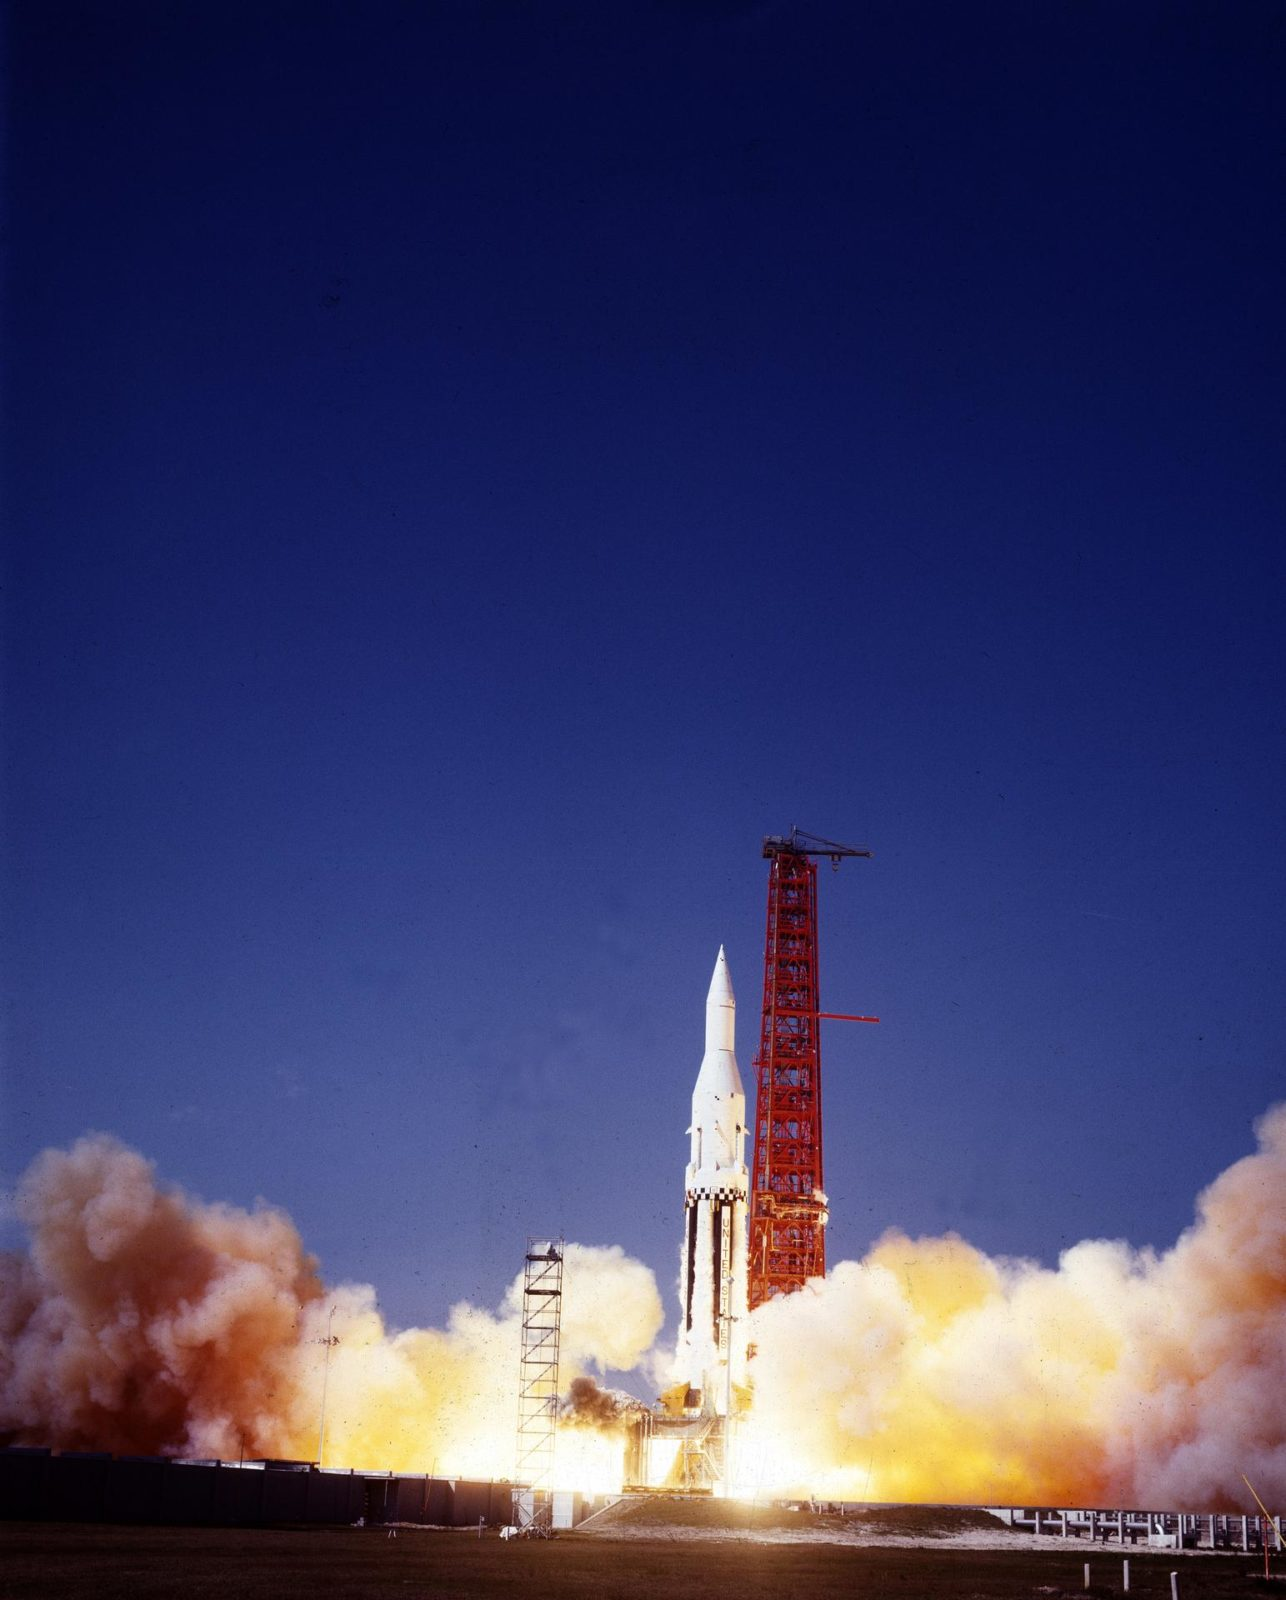 """The Saturn I (SA-4) flight lifted off from Kennedy Space Center launch Complex 34, March 28, 1963. The fourth launch of Saturn launch vehicles, developed at the Marshall Space Flight Center (MSFC) under the direction of Dr. Wernher von Braun, incorporated a Saturn I, Block I engine. The typical height of a Block I vehicle was approximately 163 feet and had only one live stage. It consisted of eight tanks, each 70 inches in diameter, clustered around a central tank, 105 inches in diameter. Four of the external tanks were fuel tanks for the RP-1 (kerosene) fuel. The other four, spaced alternately with the fuel tanks, were liquid oxygen tanks as was the large center tank. All fuel tanks and liquid oxygen tanks drained at the same rates respectively. The thrust for the stage came from eight H-1 engines, each producing a thrust of 165,000 pounds, for a total thrust of over 1,300,000 pounds. The engines were arranged in a double pattern.  Four engines, located inboard, were fixed in a square pattern around the stage axis and canted outward slightly, while the remaining four engines were located outboard in a larger square pattern offset 40 degrees from the inner pattern. Unlike the inner engines, each outer engine was gimbaled. That is, each could be swung through an arc. They were gimbaled as a means of steering the rocket, by letting the instrumentation of the rocket correct any deviations of its powered trajectory. The block I required engine gimabling as the only method of guiding and stabilizing the rocket through the lower atmosphere. The upper stages of the Block I rocket reflected the three-stage configuration of the Saturn I vehicle. Like SA-3, the SA-4 flight's upper stage ejected 113,560 liters (30,000 gallons) of ballast water in the upper atmosphere for """"Project Highwater"""" physics experiment. Release of this vast quantity of water in a near-space environment marked the second purely scientific large-scale experiment. The SA-4 was the last Block I rocket launc"""